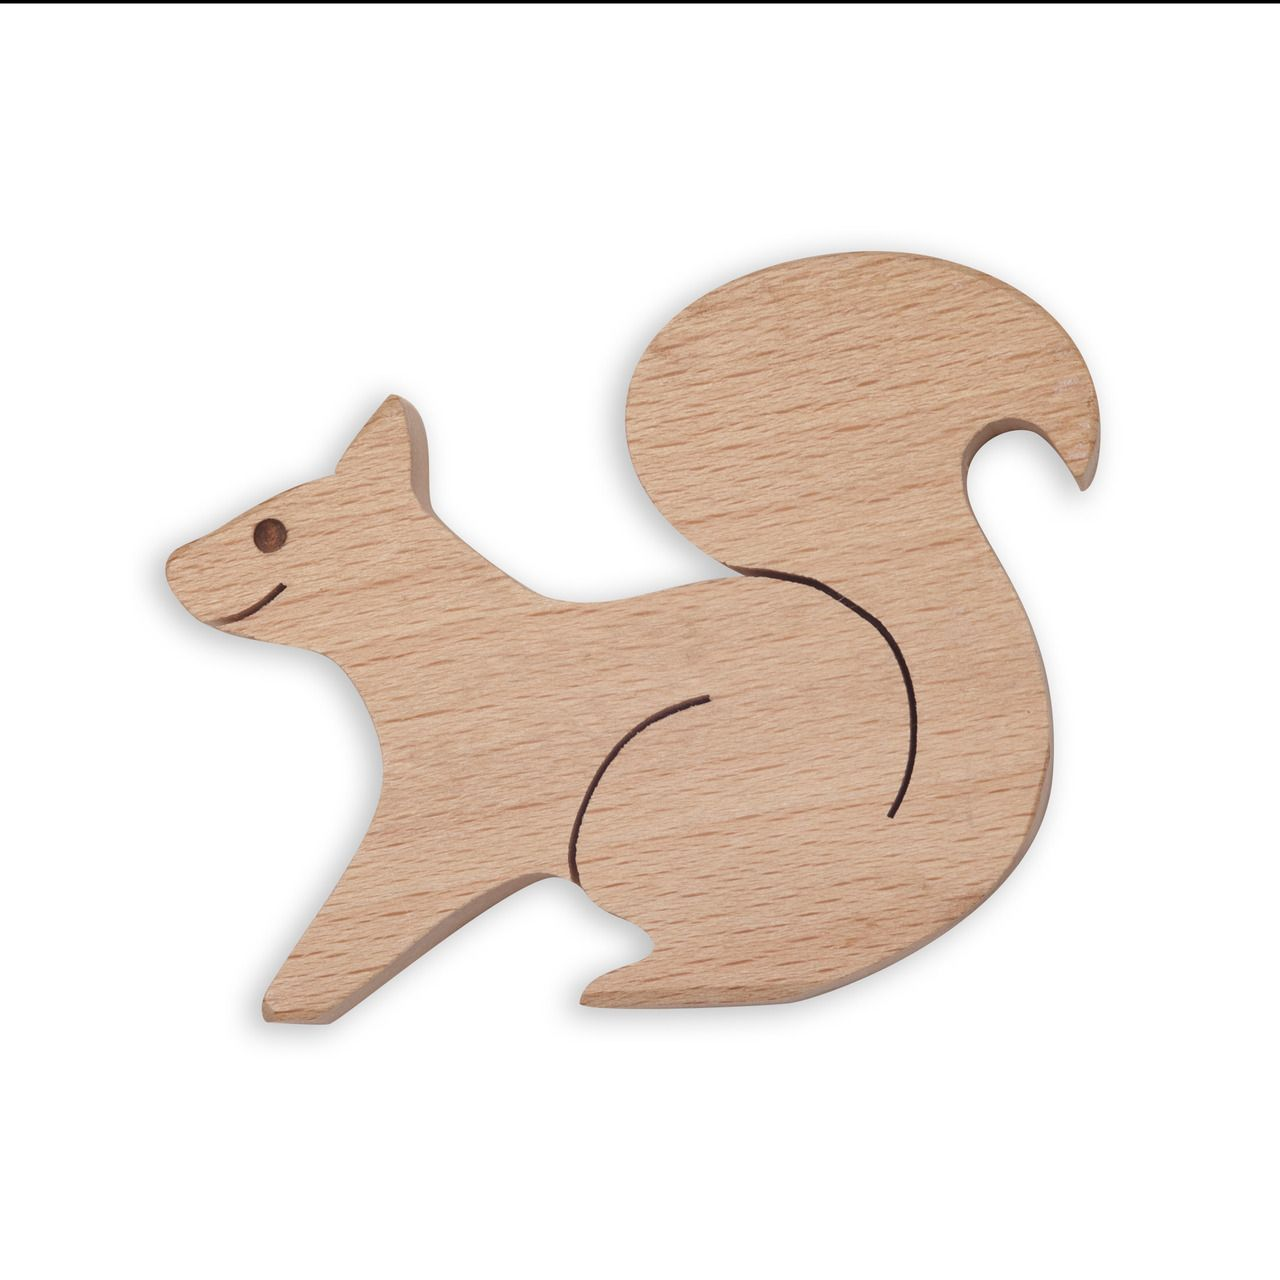 Wooden Squirrel Toy Puzzles Wooden Animals Wood Toys